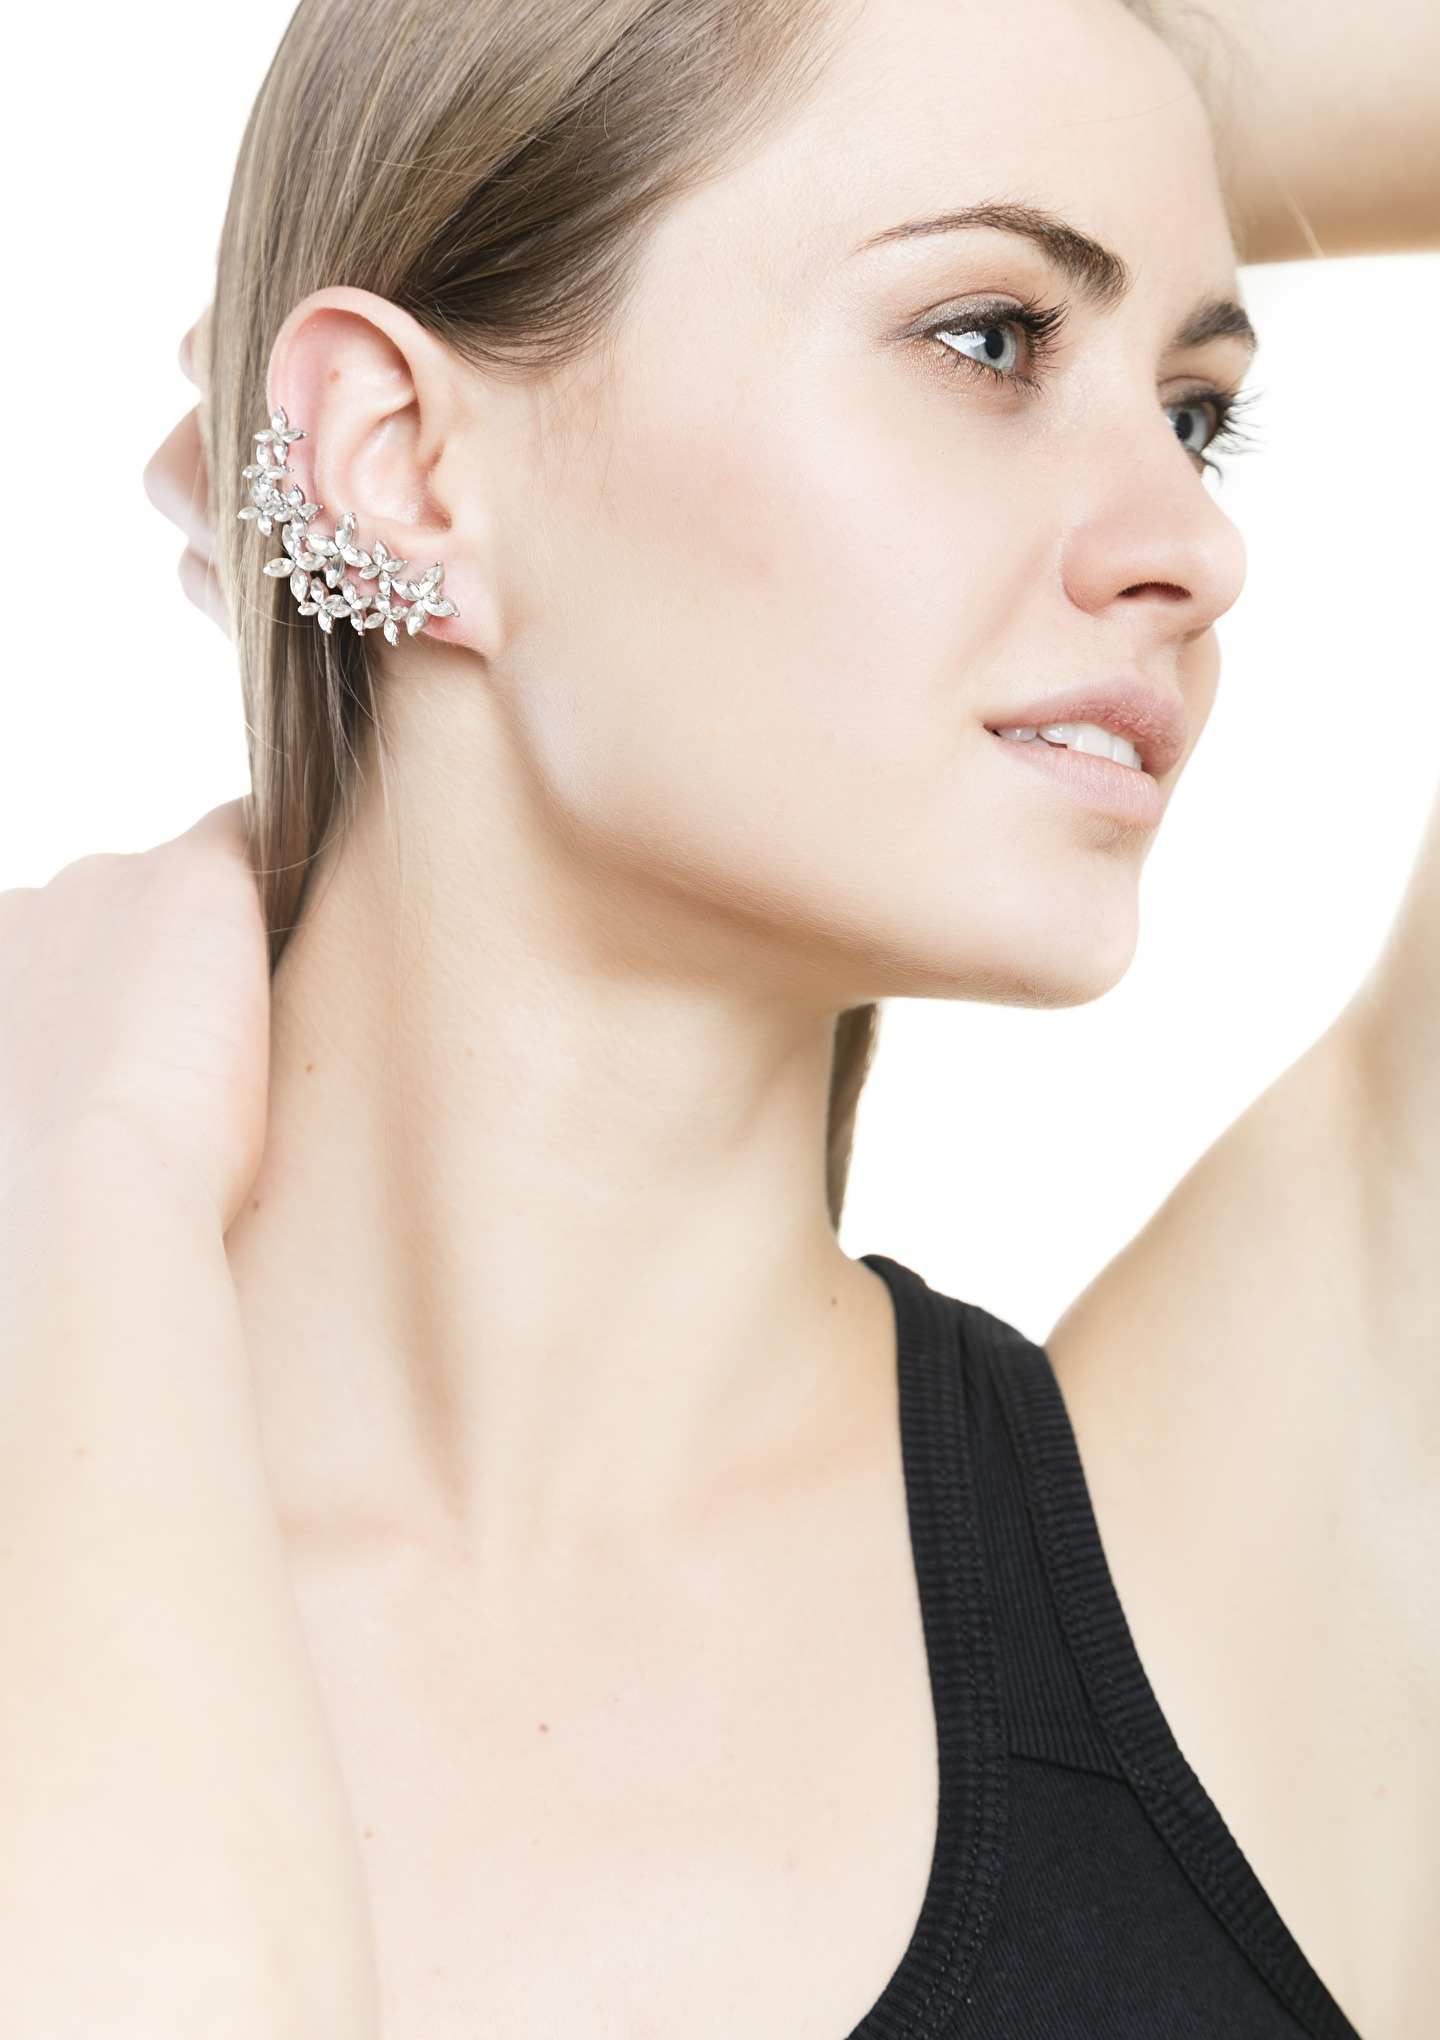 How To Make Easy Ear Cuff